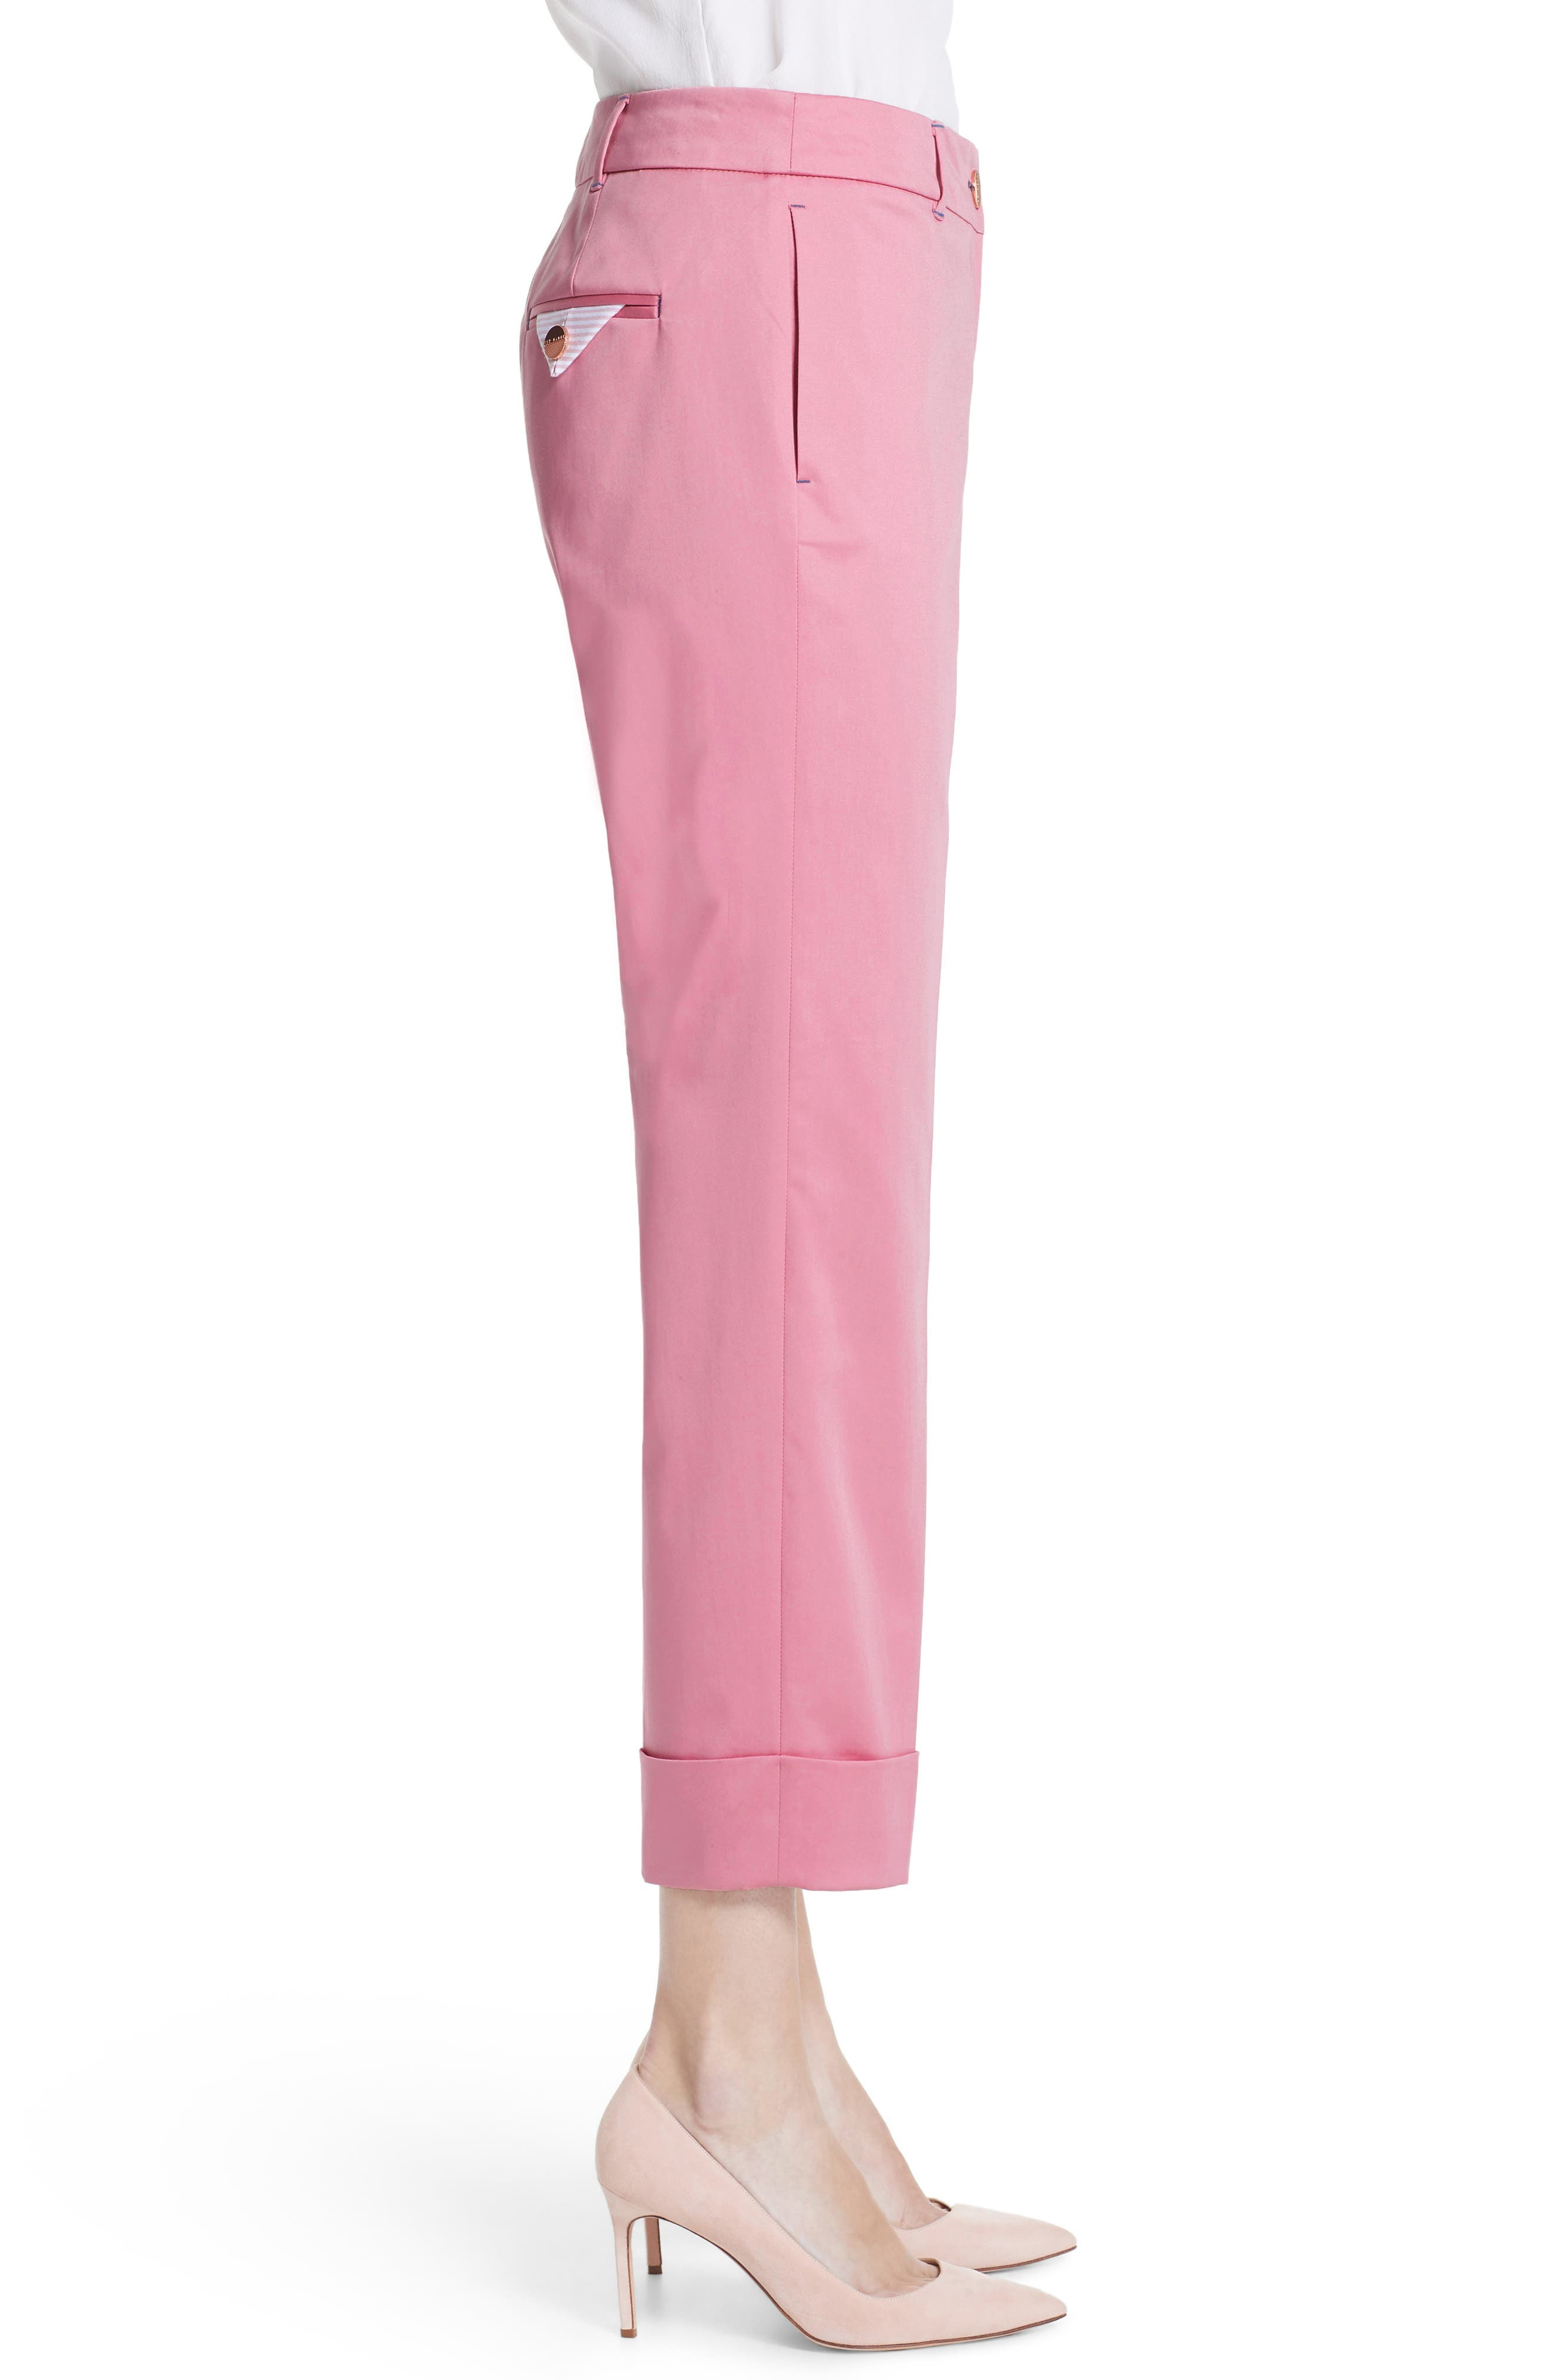 Saydii Deep Cuff Stretch Cotton Chino Pants,                             Alternate thumbnail 3, color,                             652